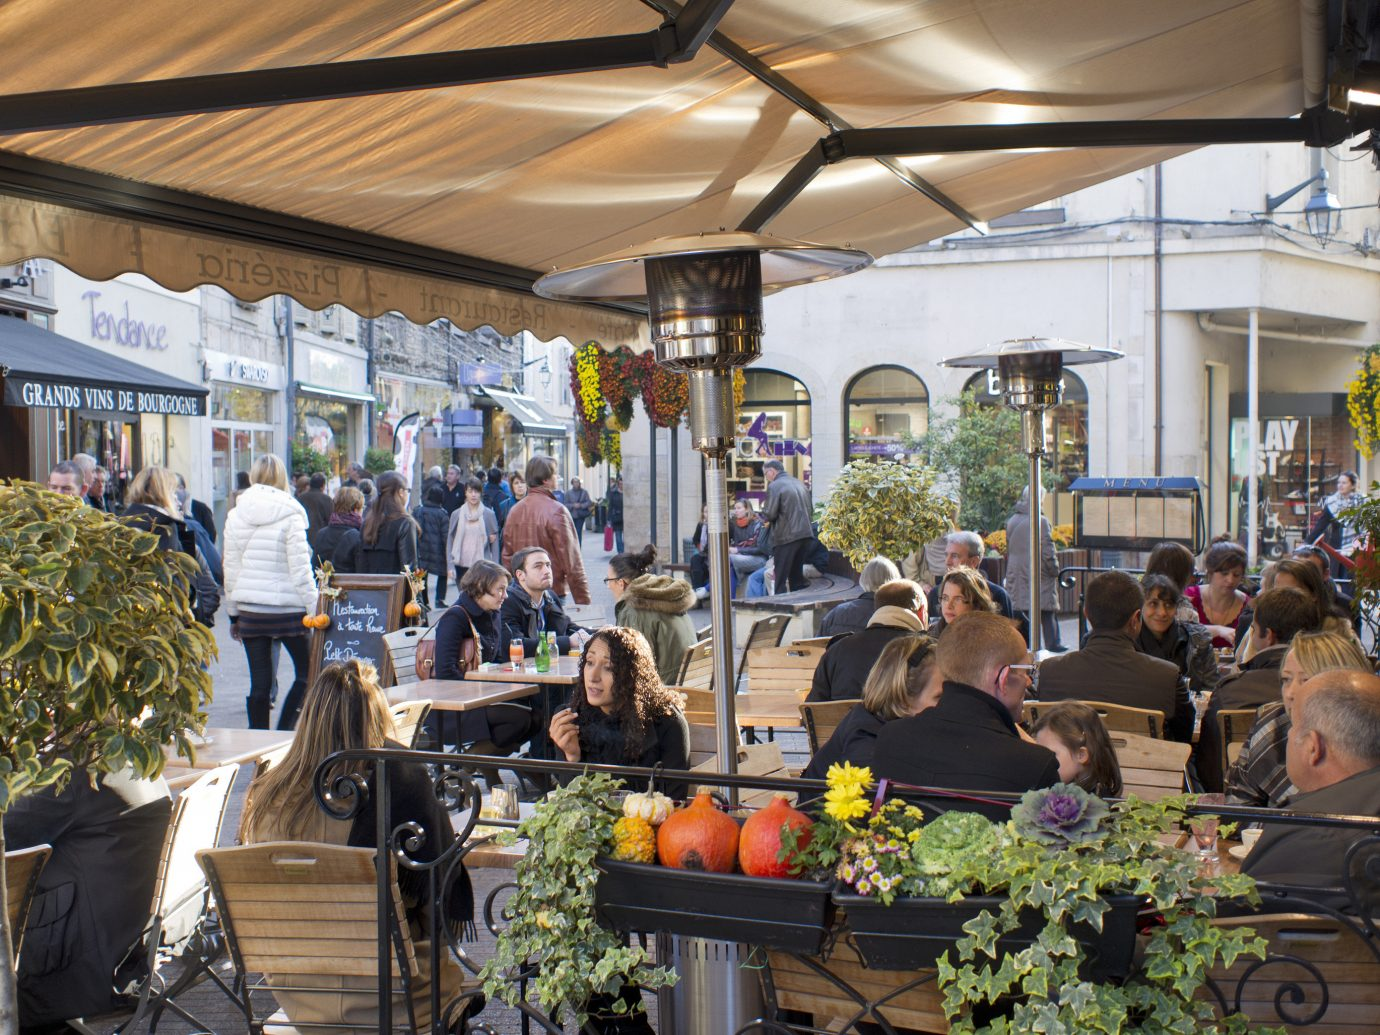 Trip Ideas marketplace public space market City plant street outdoor structure restaurant tree stall